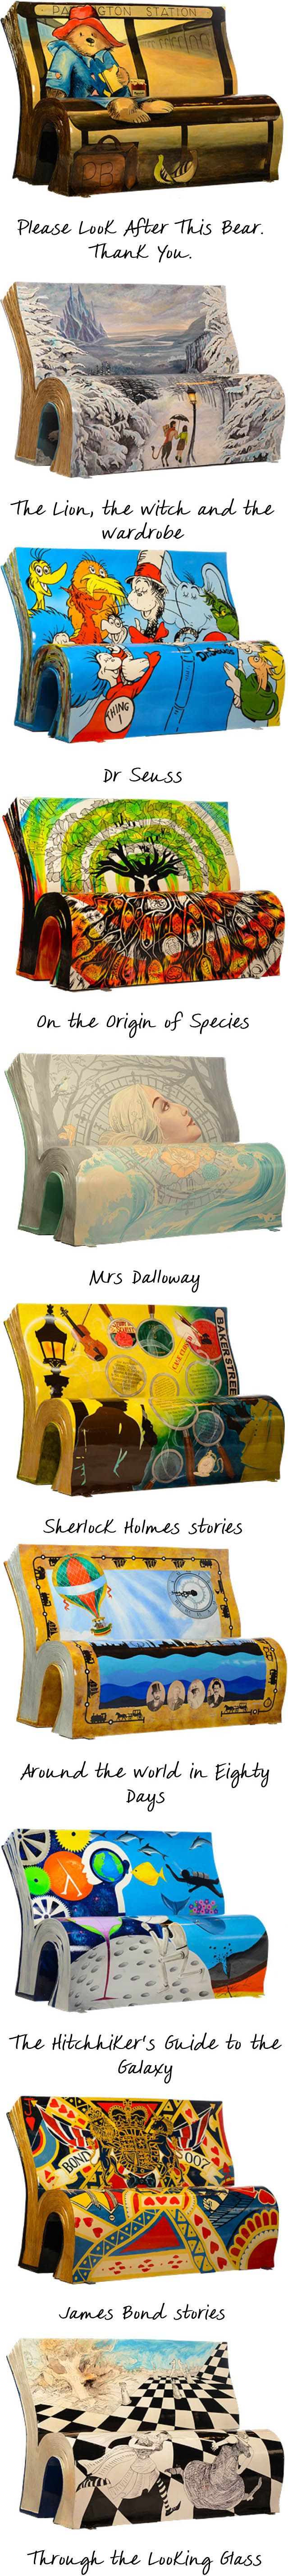 10 of the 50 literary benches the National Literary Trust and Wild in Art have placed around London to celebrate reading.